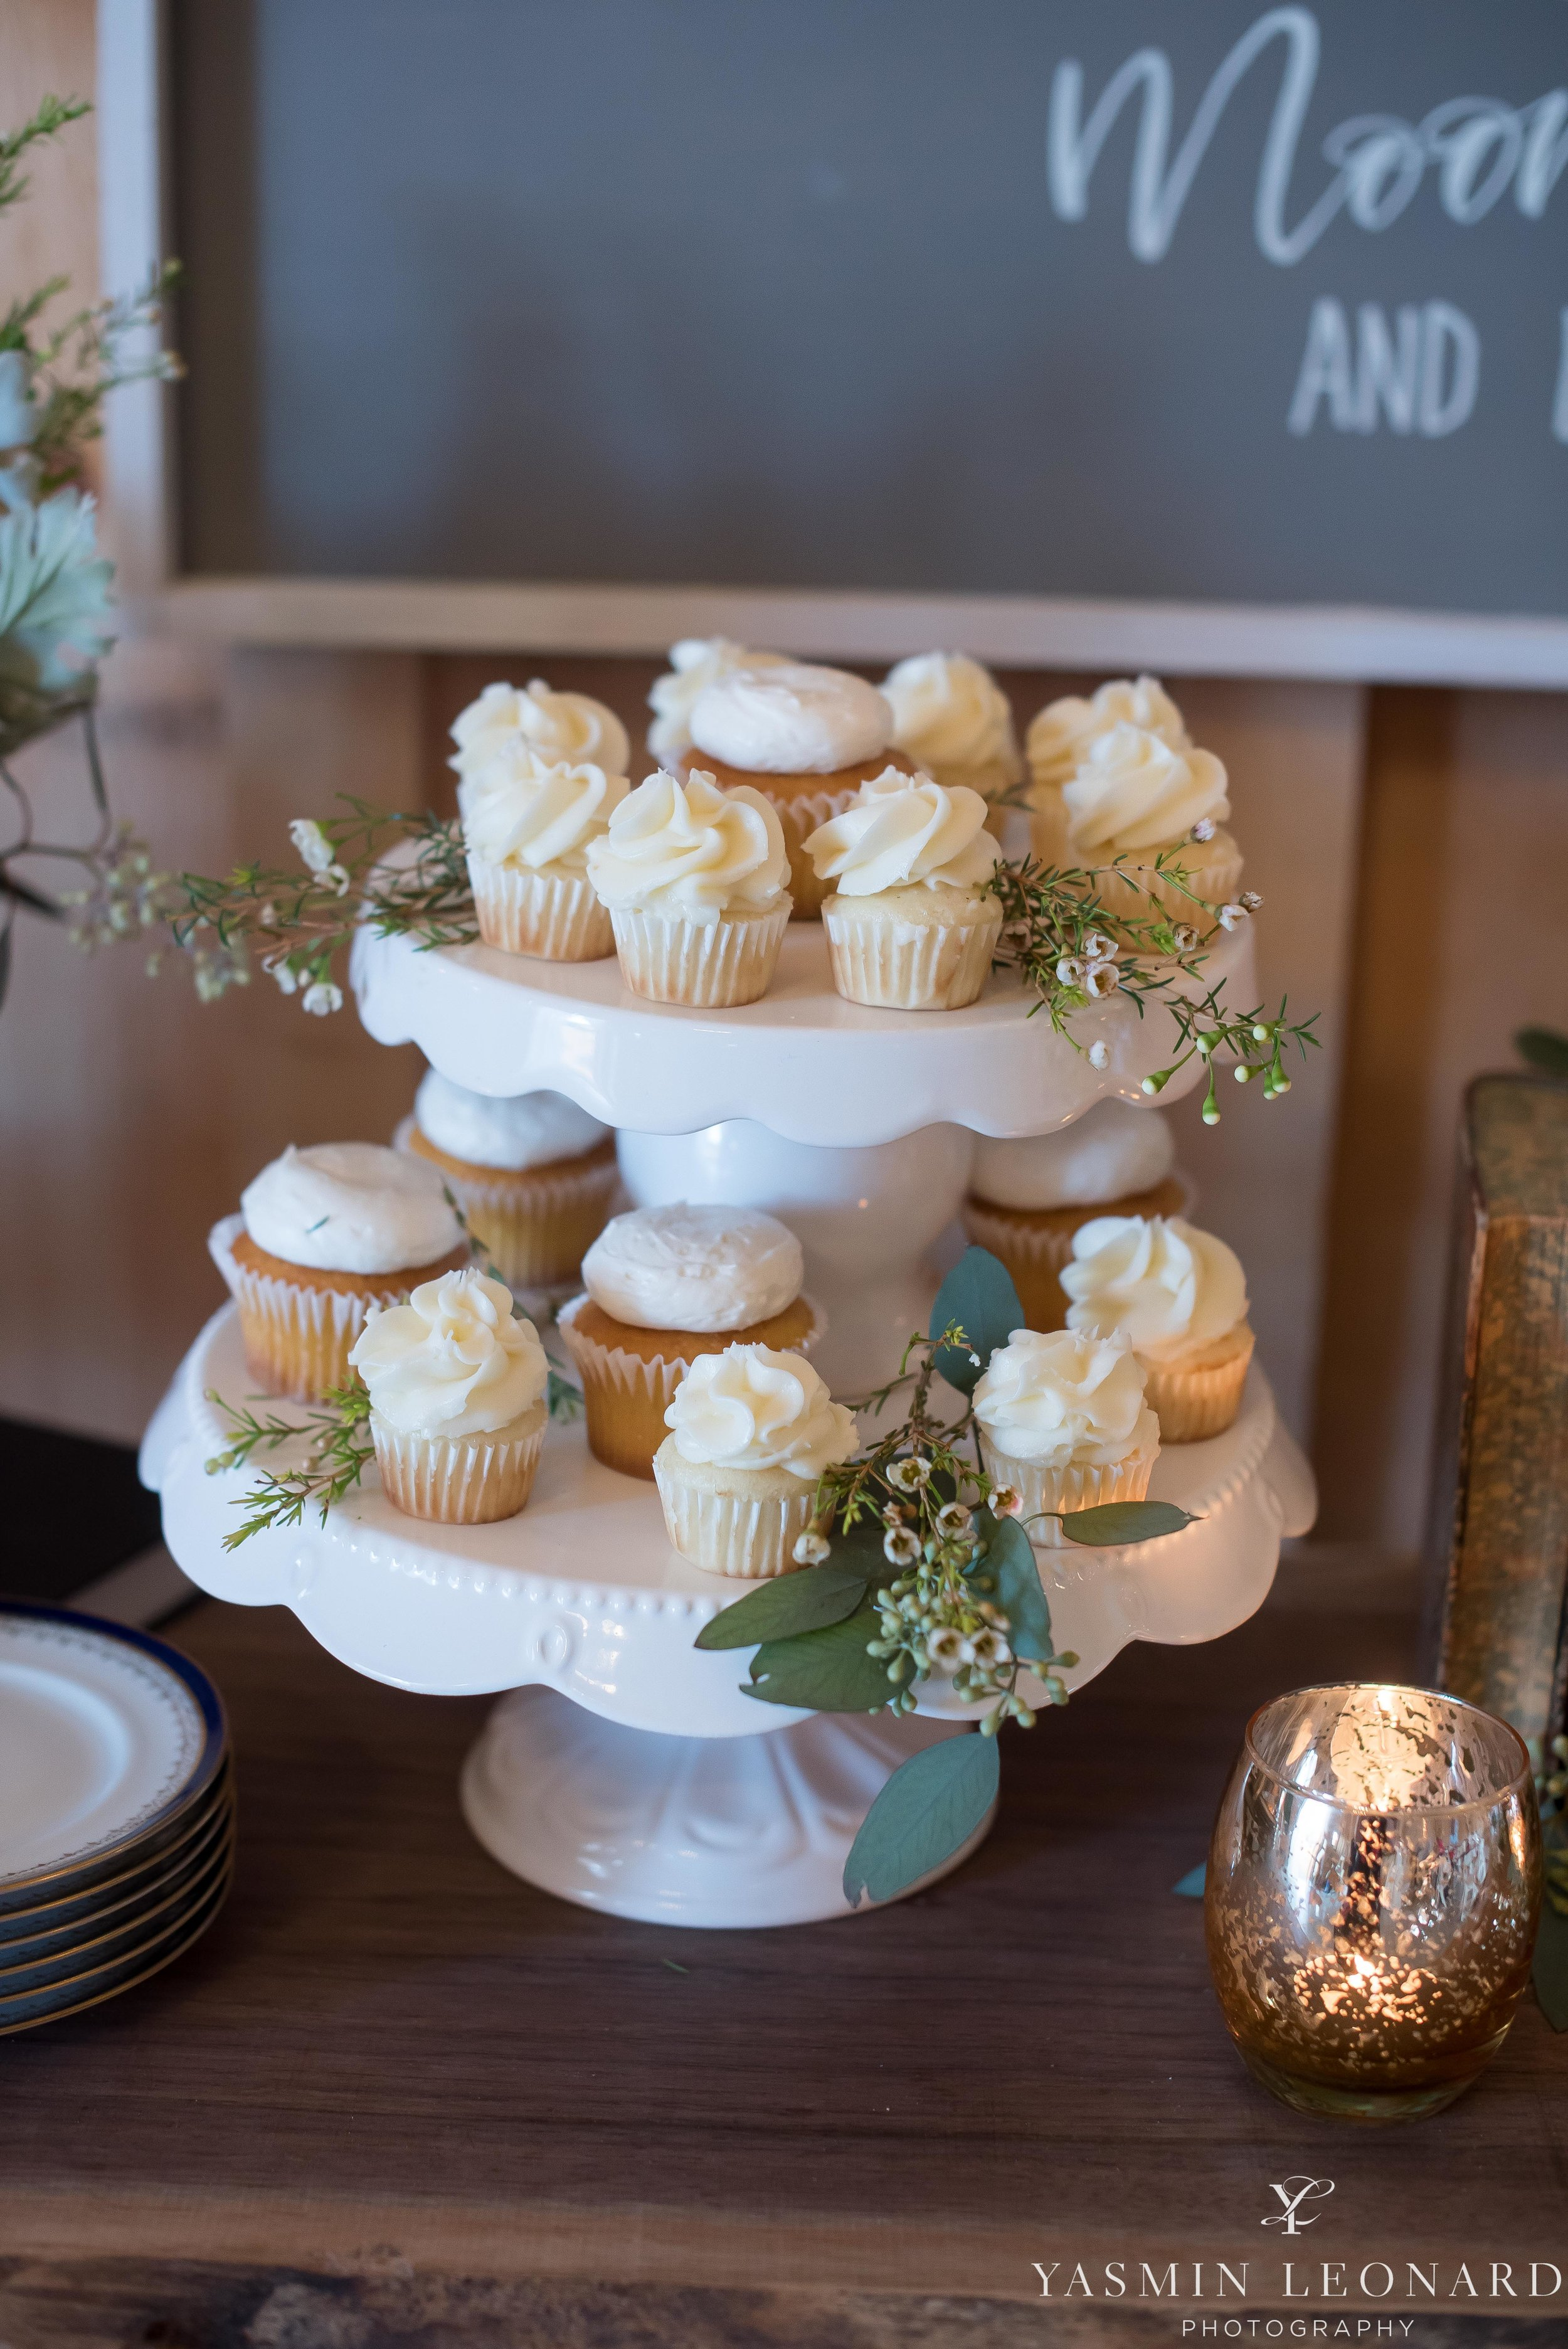 Old Homeplace Vineyard - Grits and Glitter - Dashing Dames Bridal Boutique - Just Priceless - Yasmin Leonard Photography - High Point Weddings - NC Weddings - NC Wedding Venues - High Point Jewelers - NC Wines - NC Vineyards - Cupcake Cuties-66.jpg